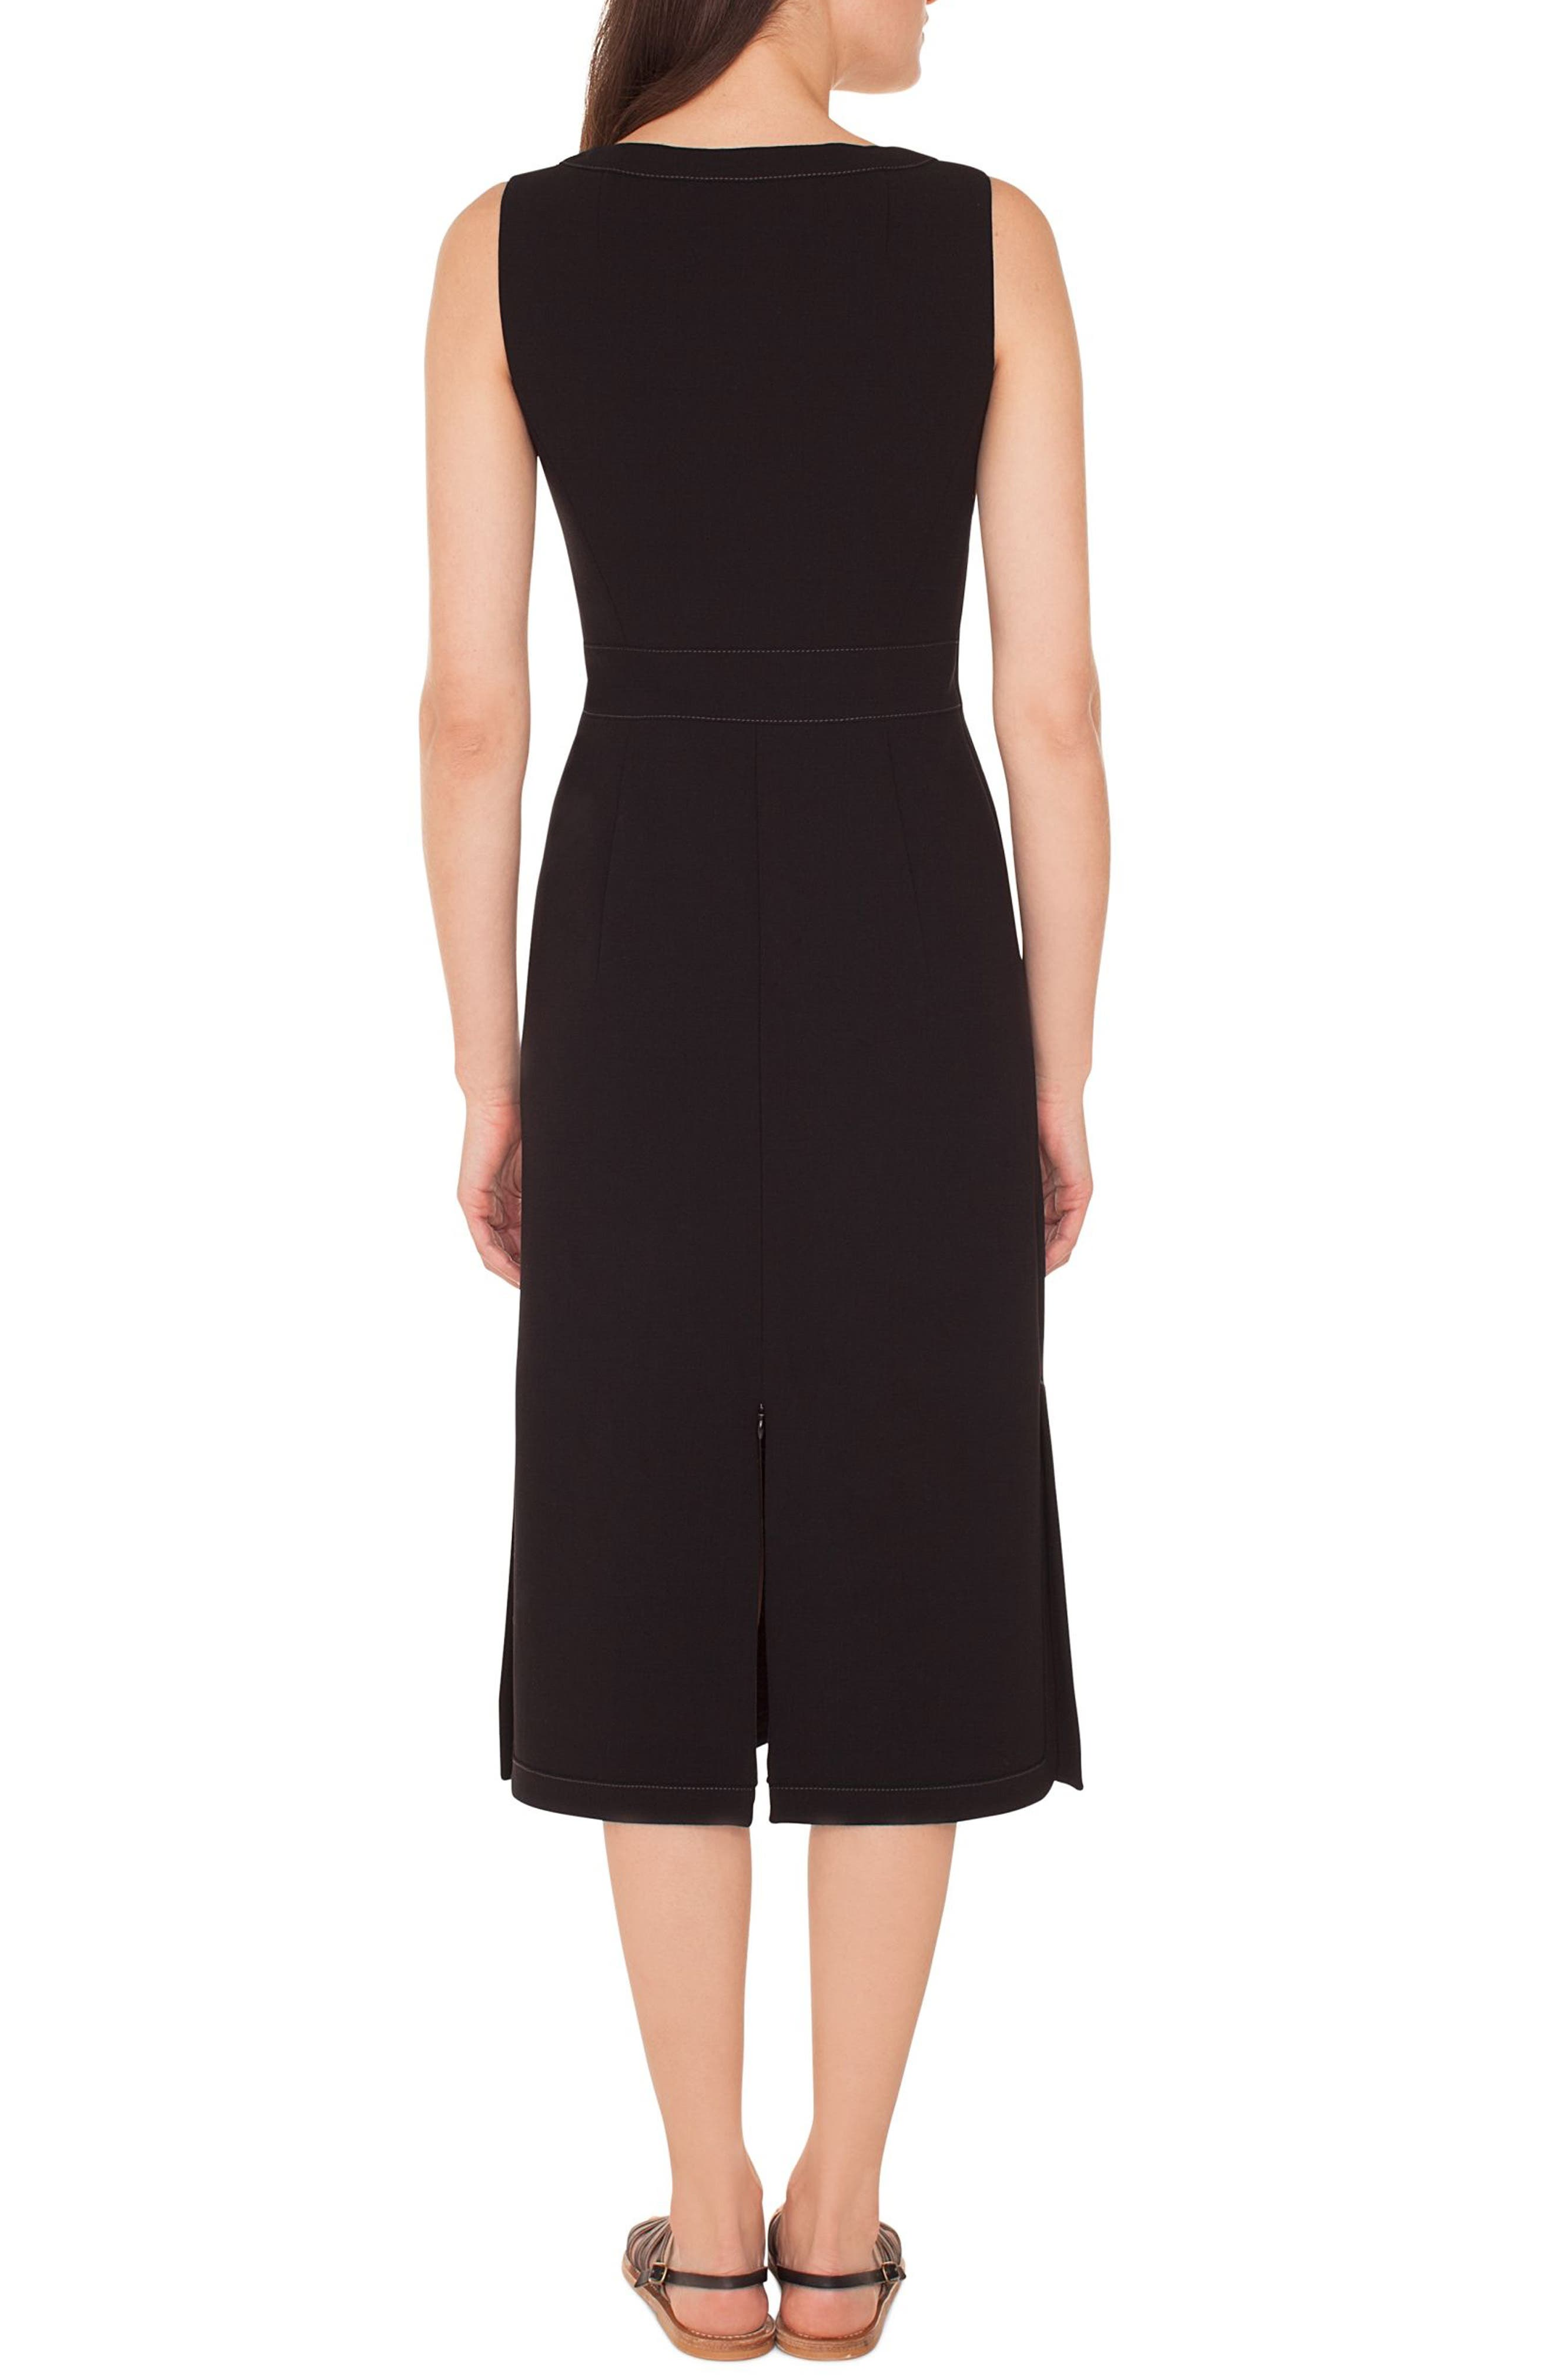 Topstitch Double Face Stretch Wool Dress,                             Alternate thumbnail 2, color,                             BLACK